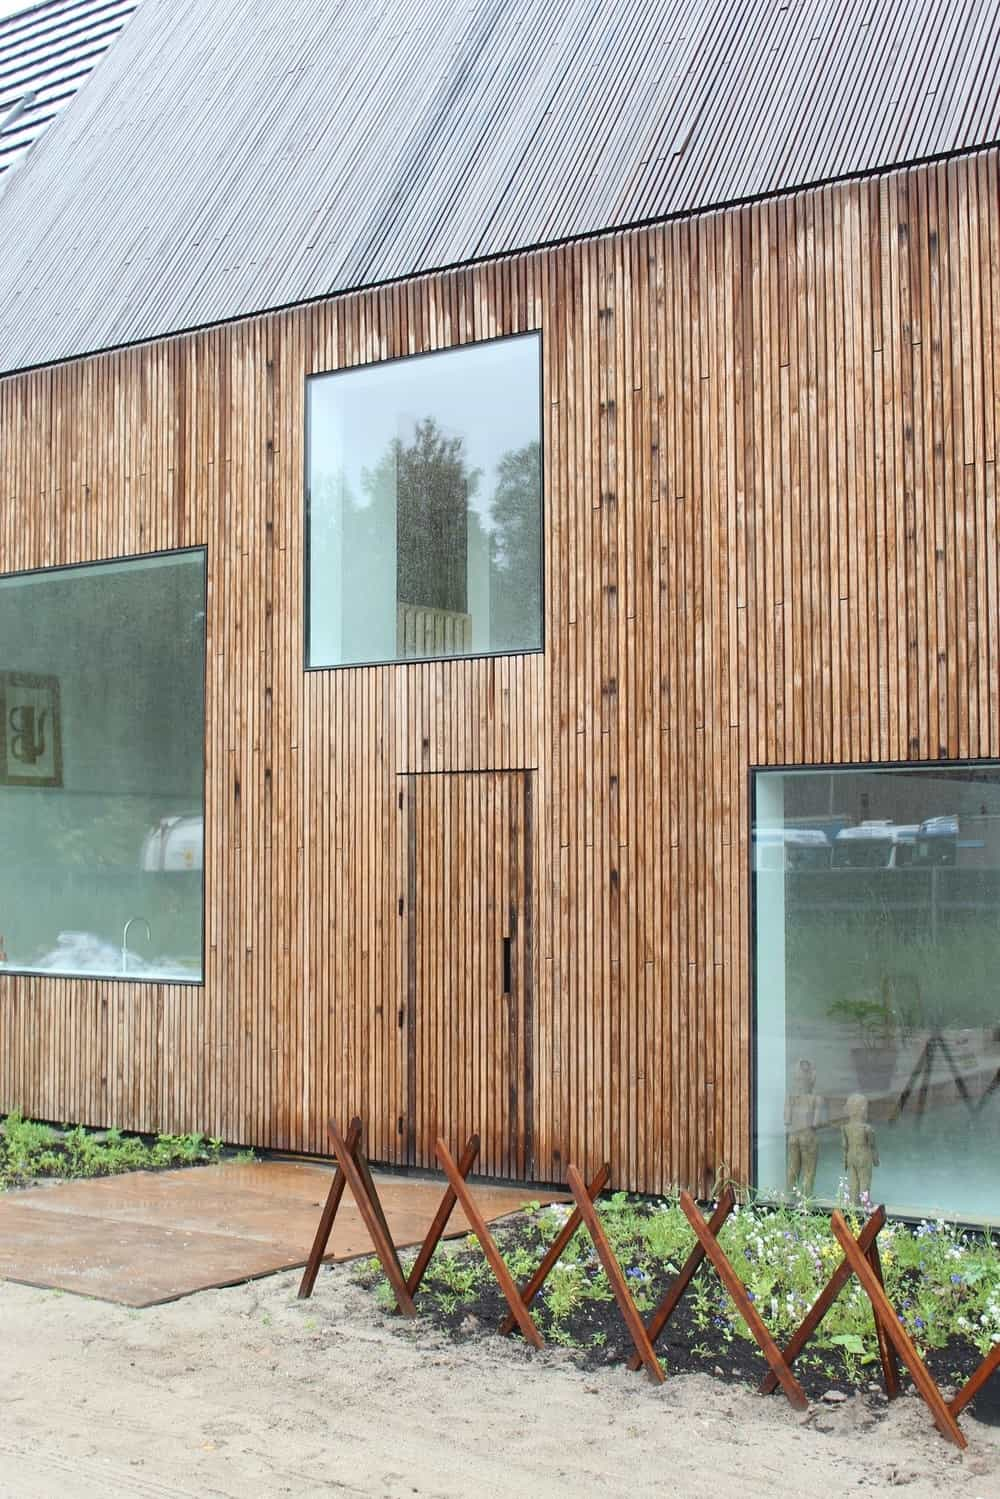 This close look at the front of the house showcases the large glass windows that stand out against the wooden exterior wall.